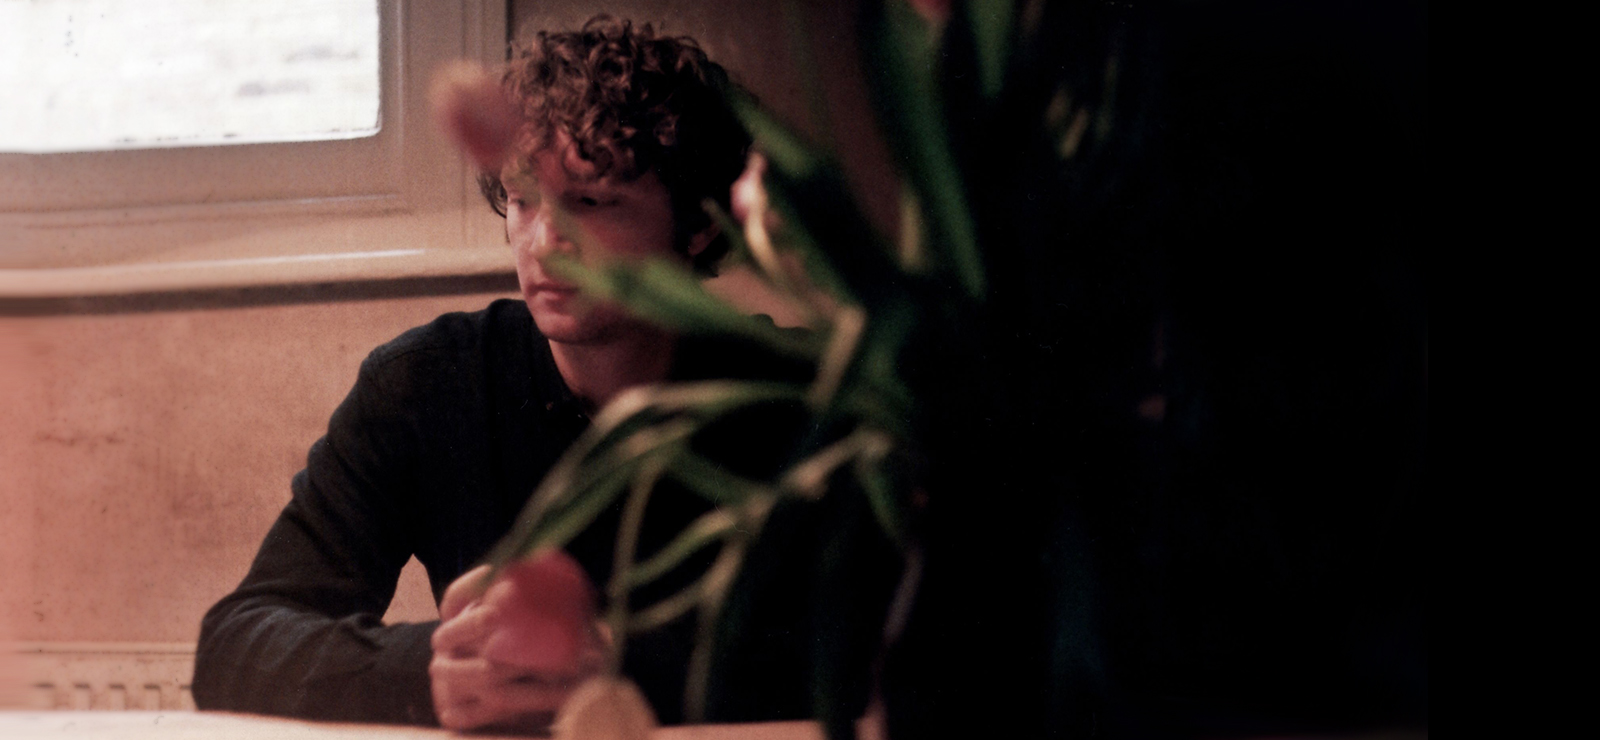 [Sam Amidon] Photo by Terry Magsdon